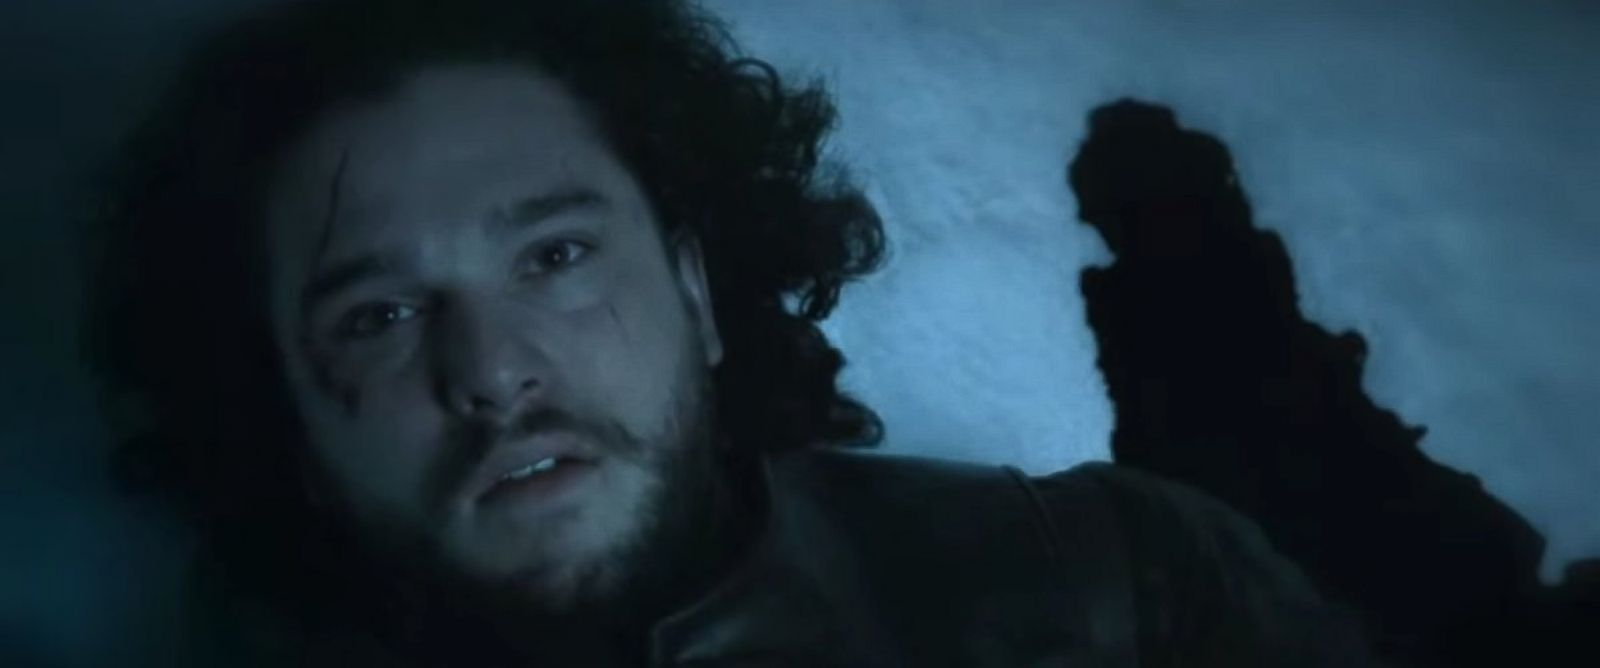 PHOTO: Kit Harrington as Jon Snow, in the HBO show Game of Thrones.